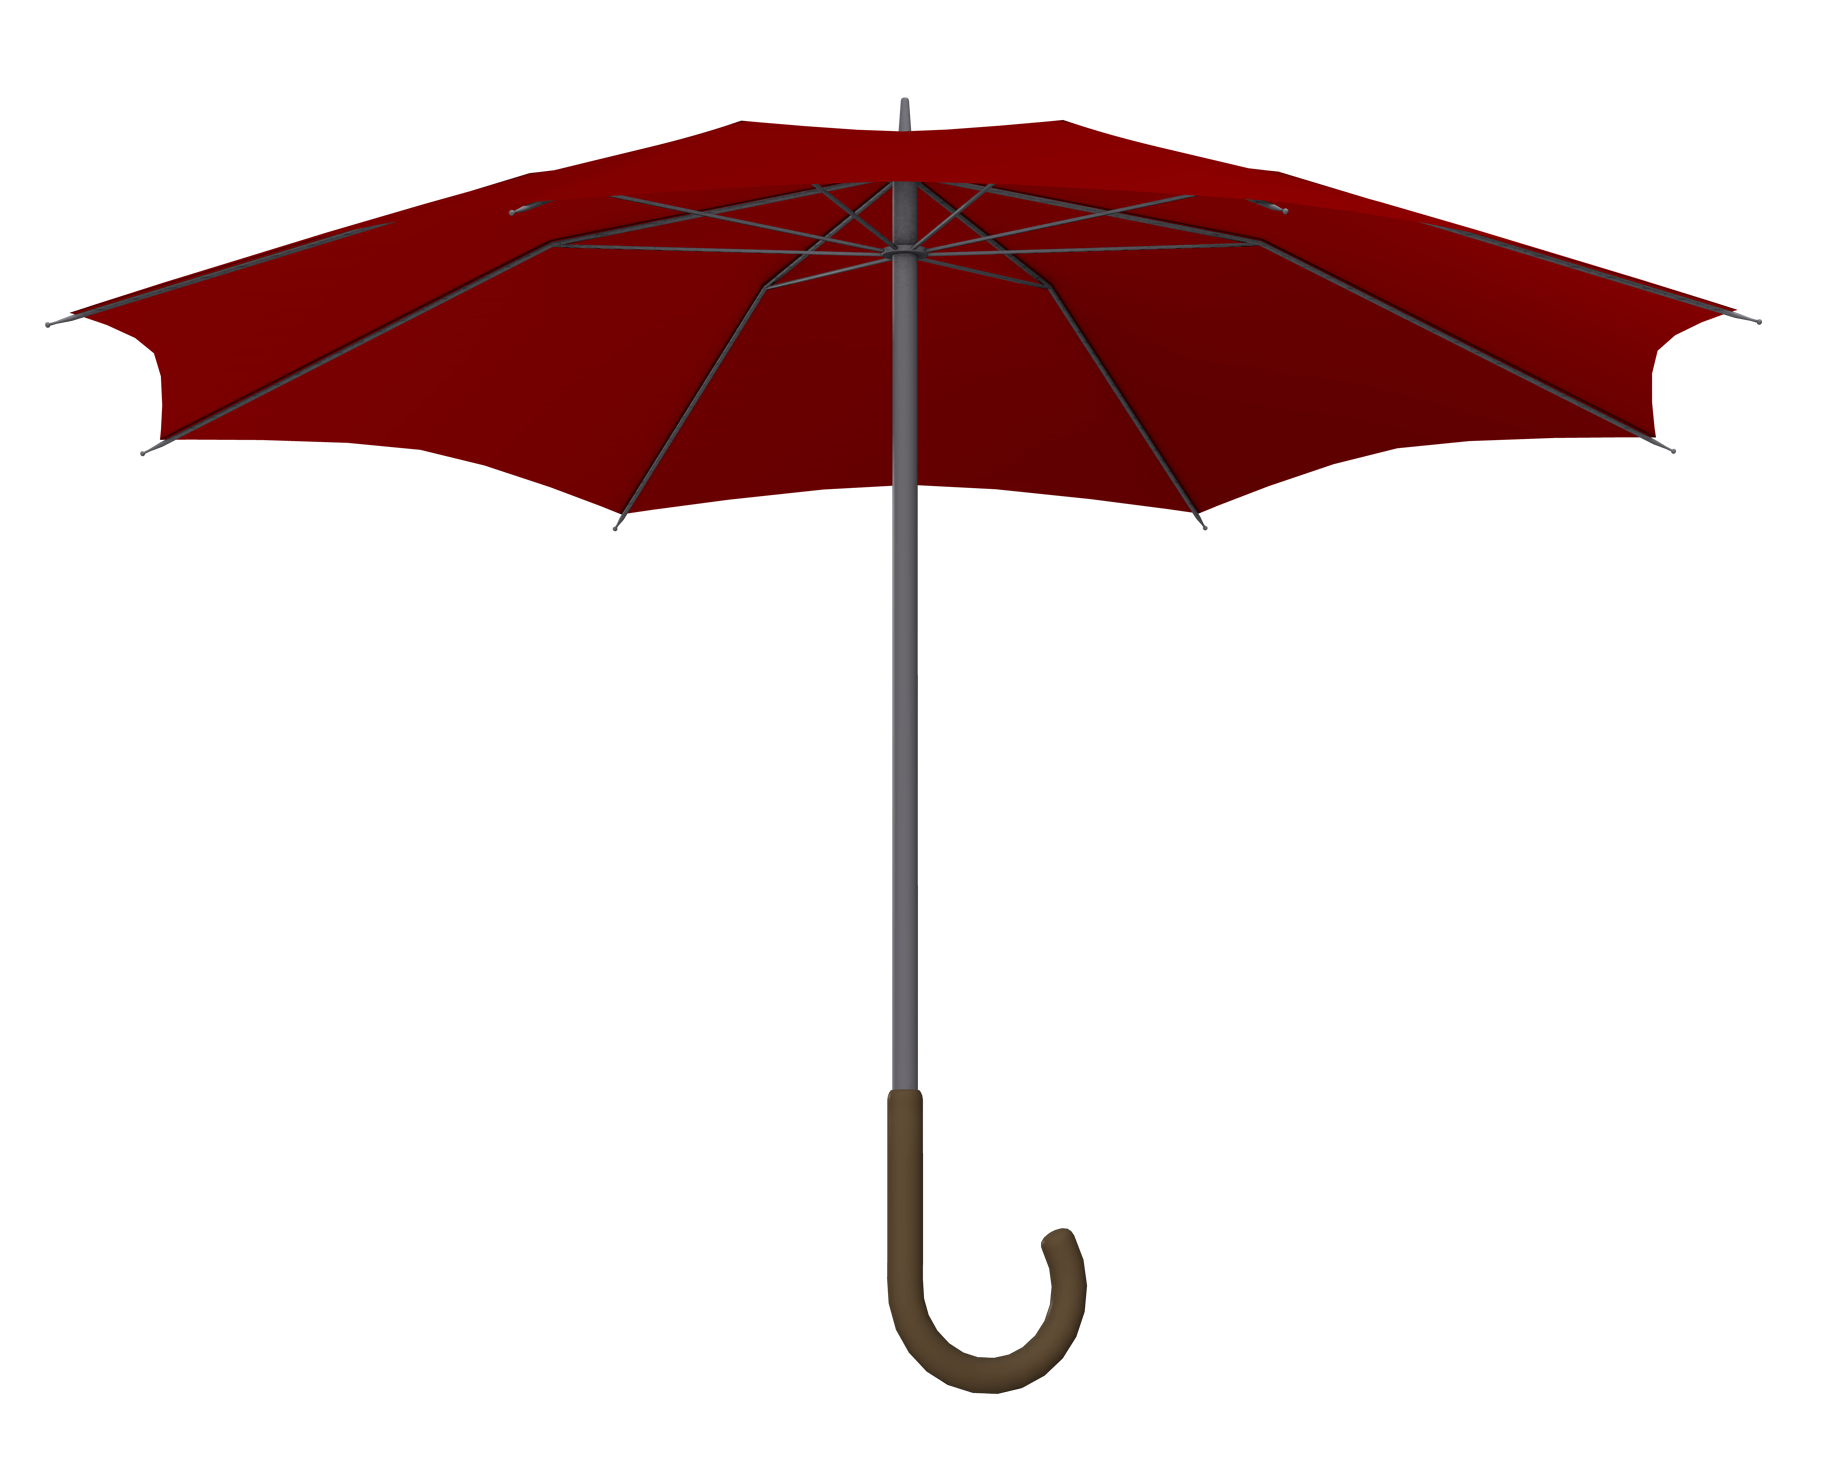 umbrella png transparent image pngpix #18652